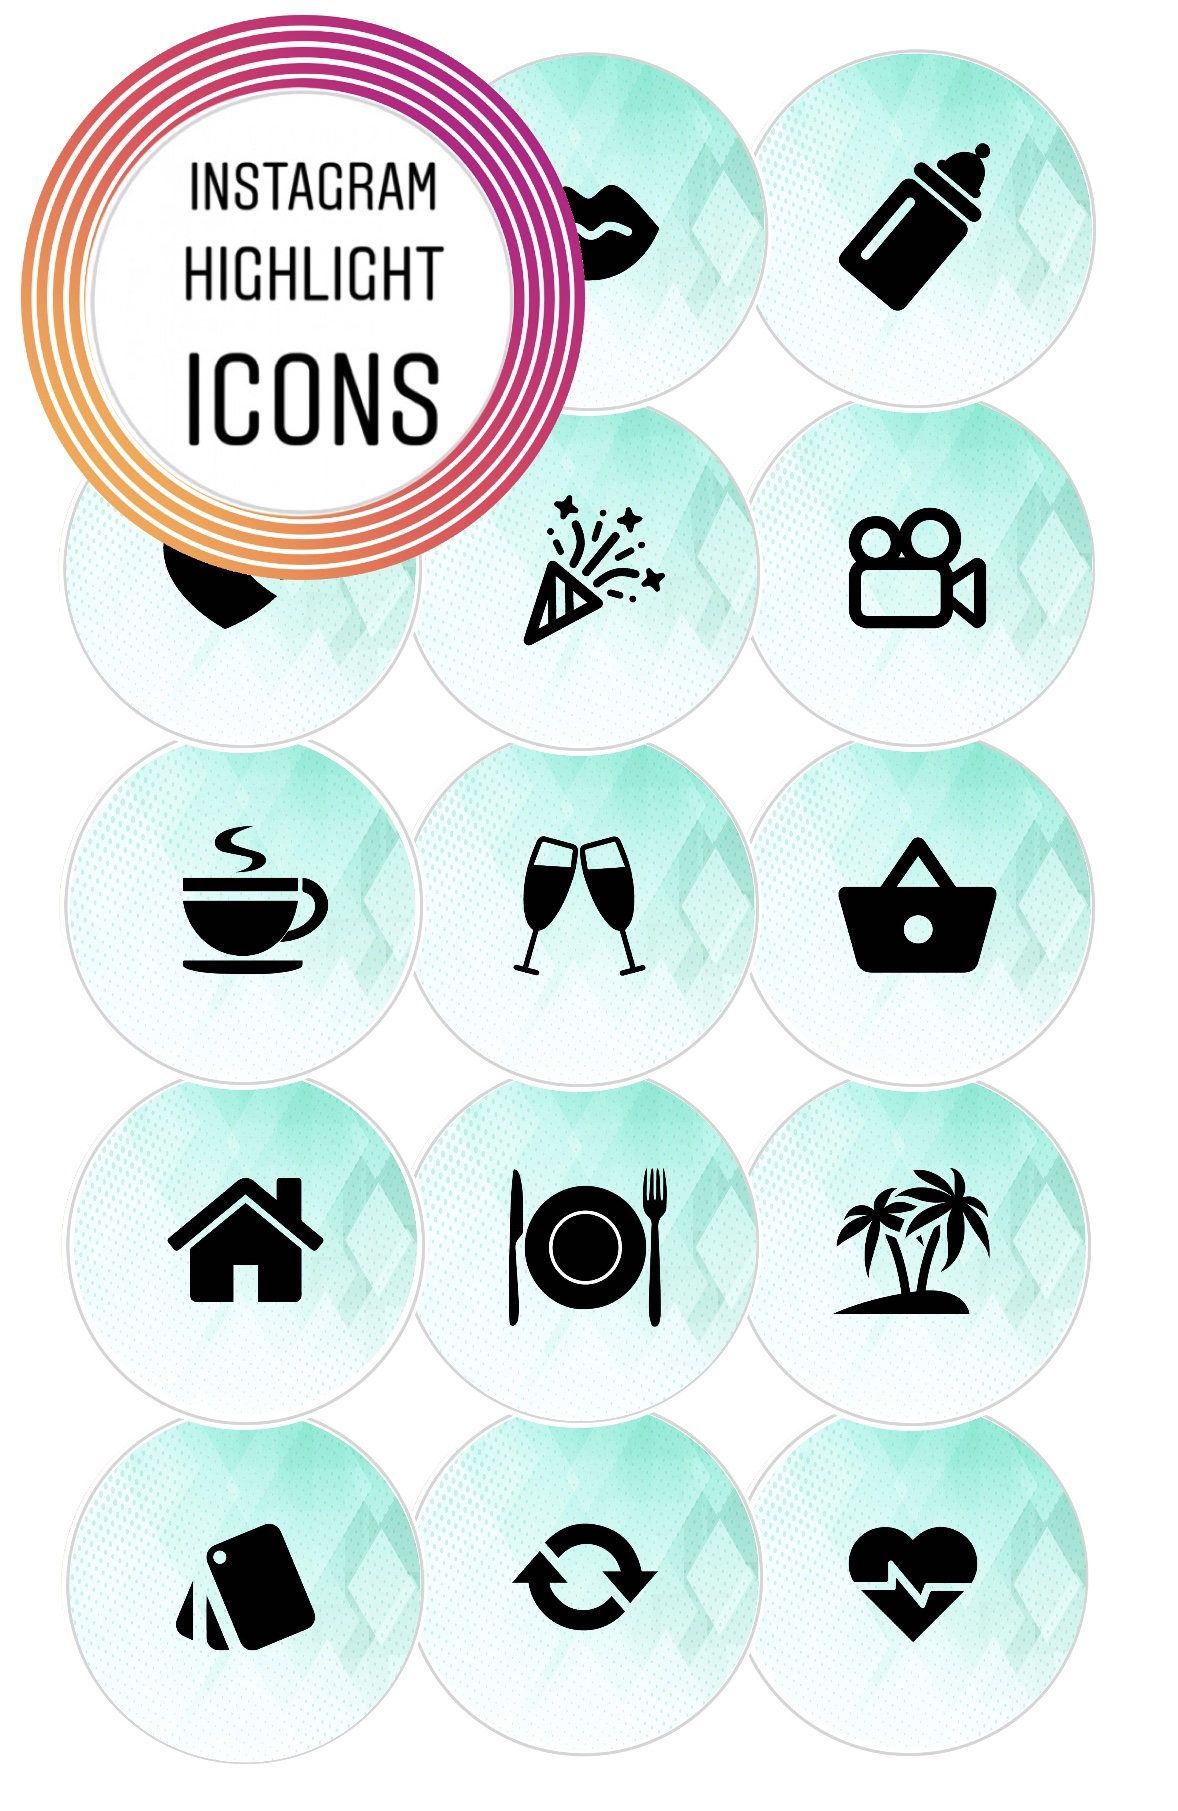 Pin by Waudle on Instagram Story Highlight Icon Cover